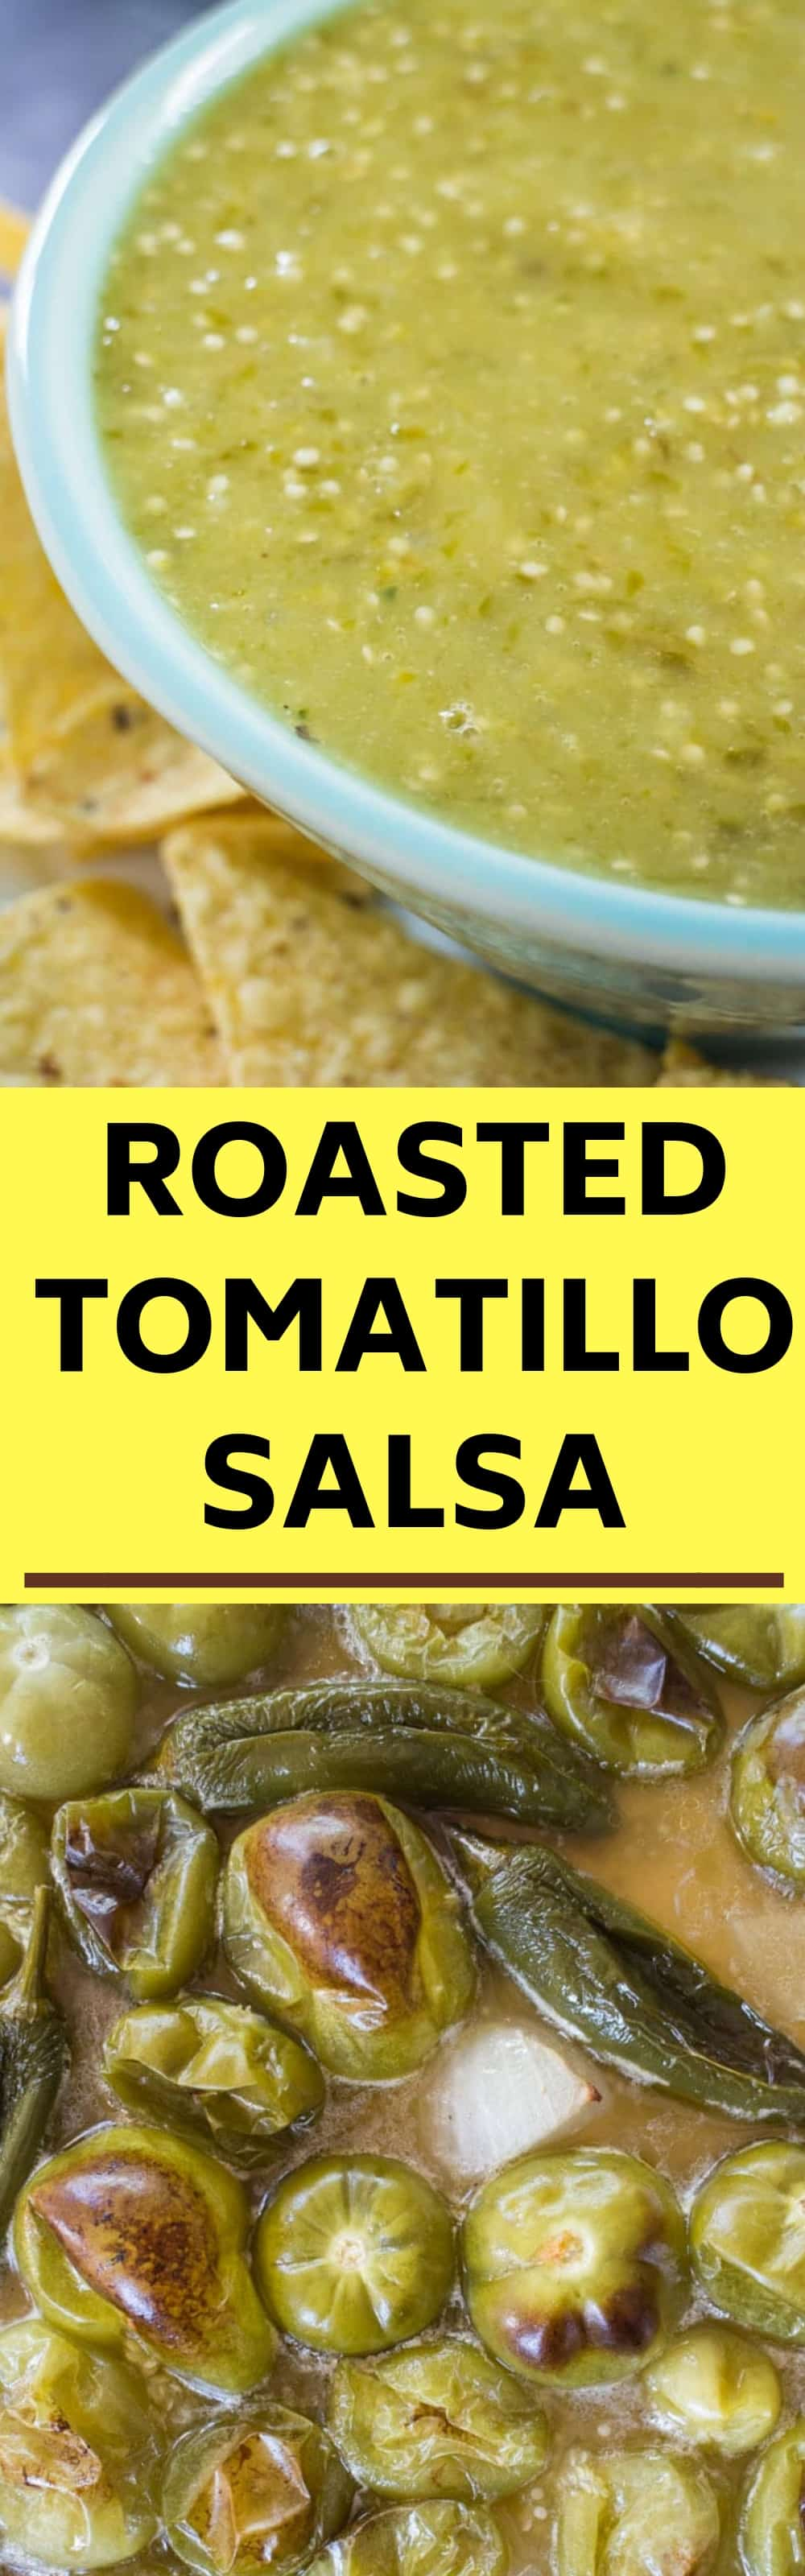 This easy recipe for Roasted Tomatillo Salsa Verde is packed with flavor and creaminess thanks to roasted tomatillos, onion and jalapeños! Learn how to make homemade roasted tomatillo salsa to serve with chips, tacos, enchiladas and more. Whole30, paleo, vegan, and gluten-free.